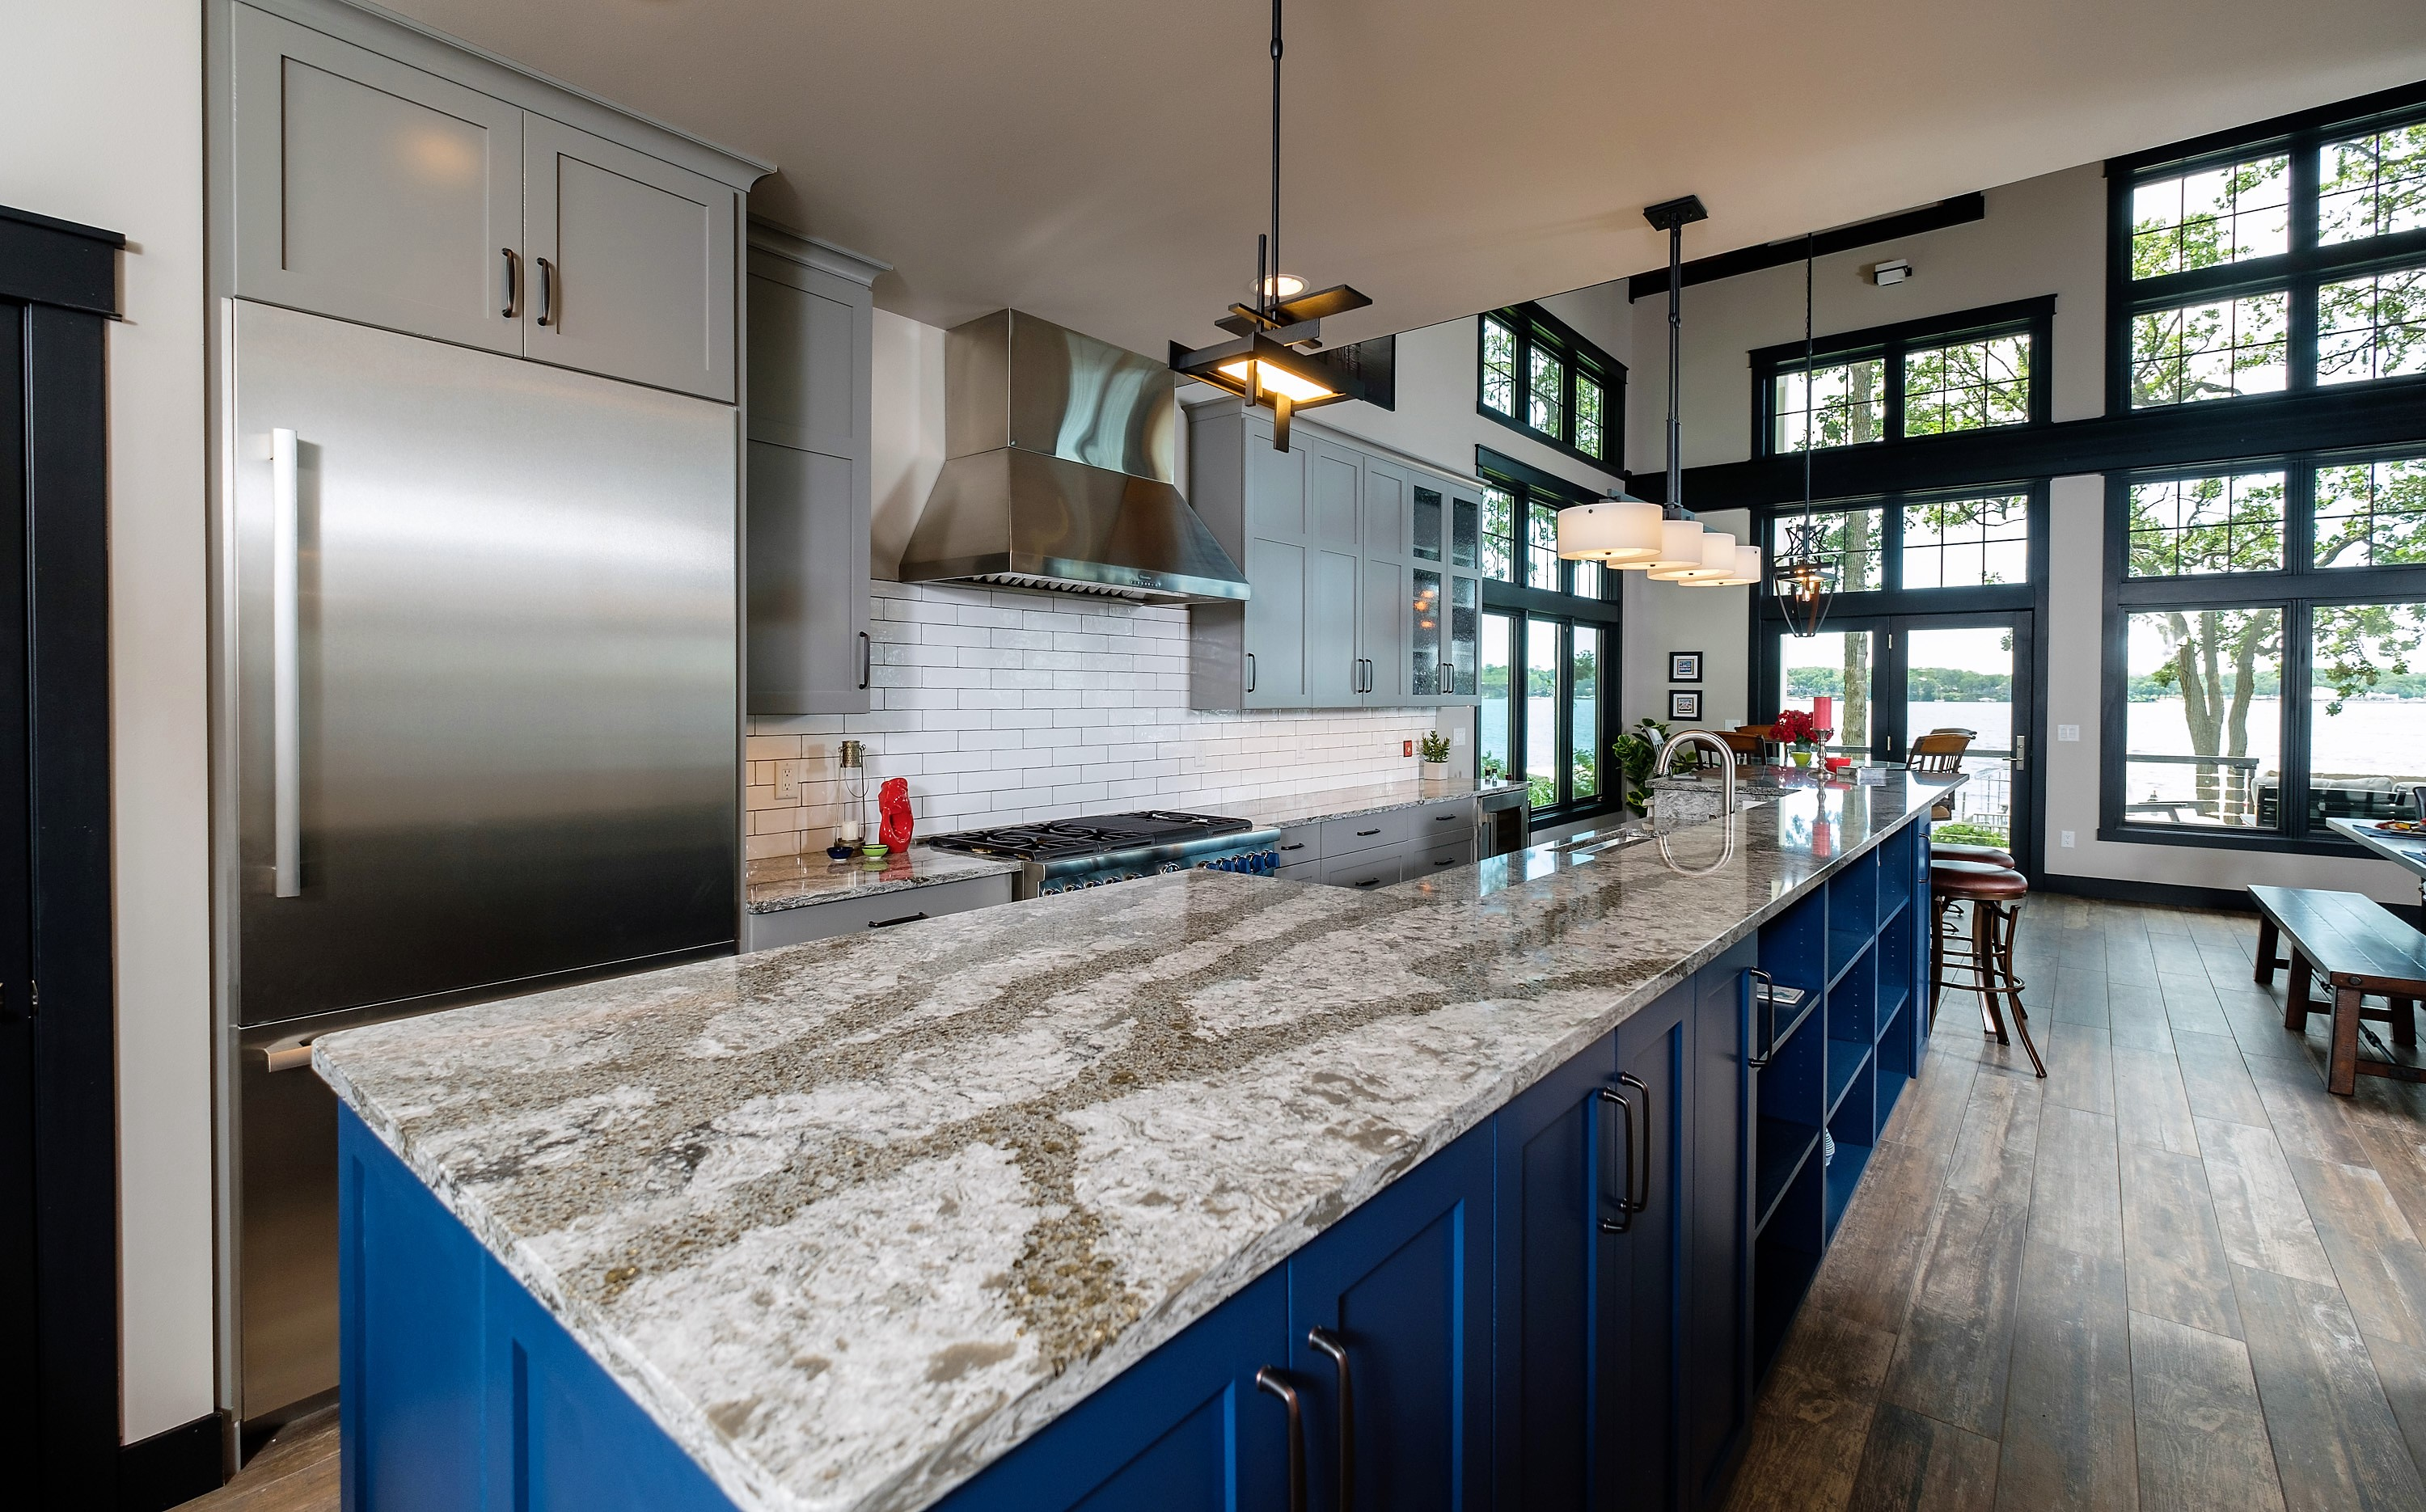 countertop cambria countertops with coastal collection kbtribechat low kitchens galloway quartz res